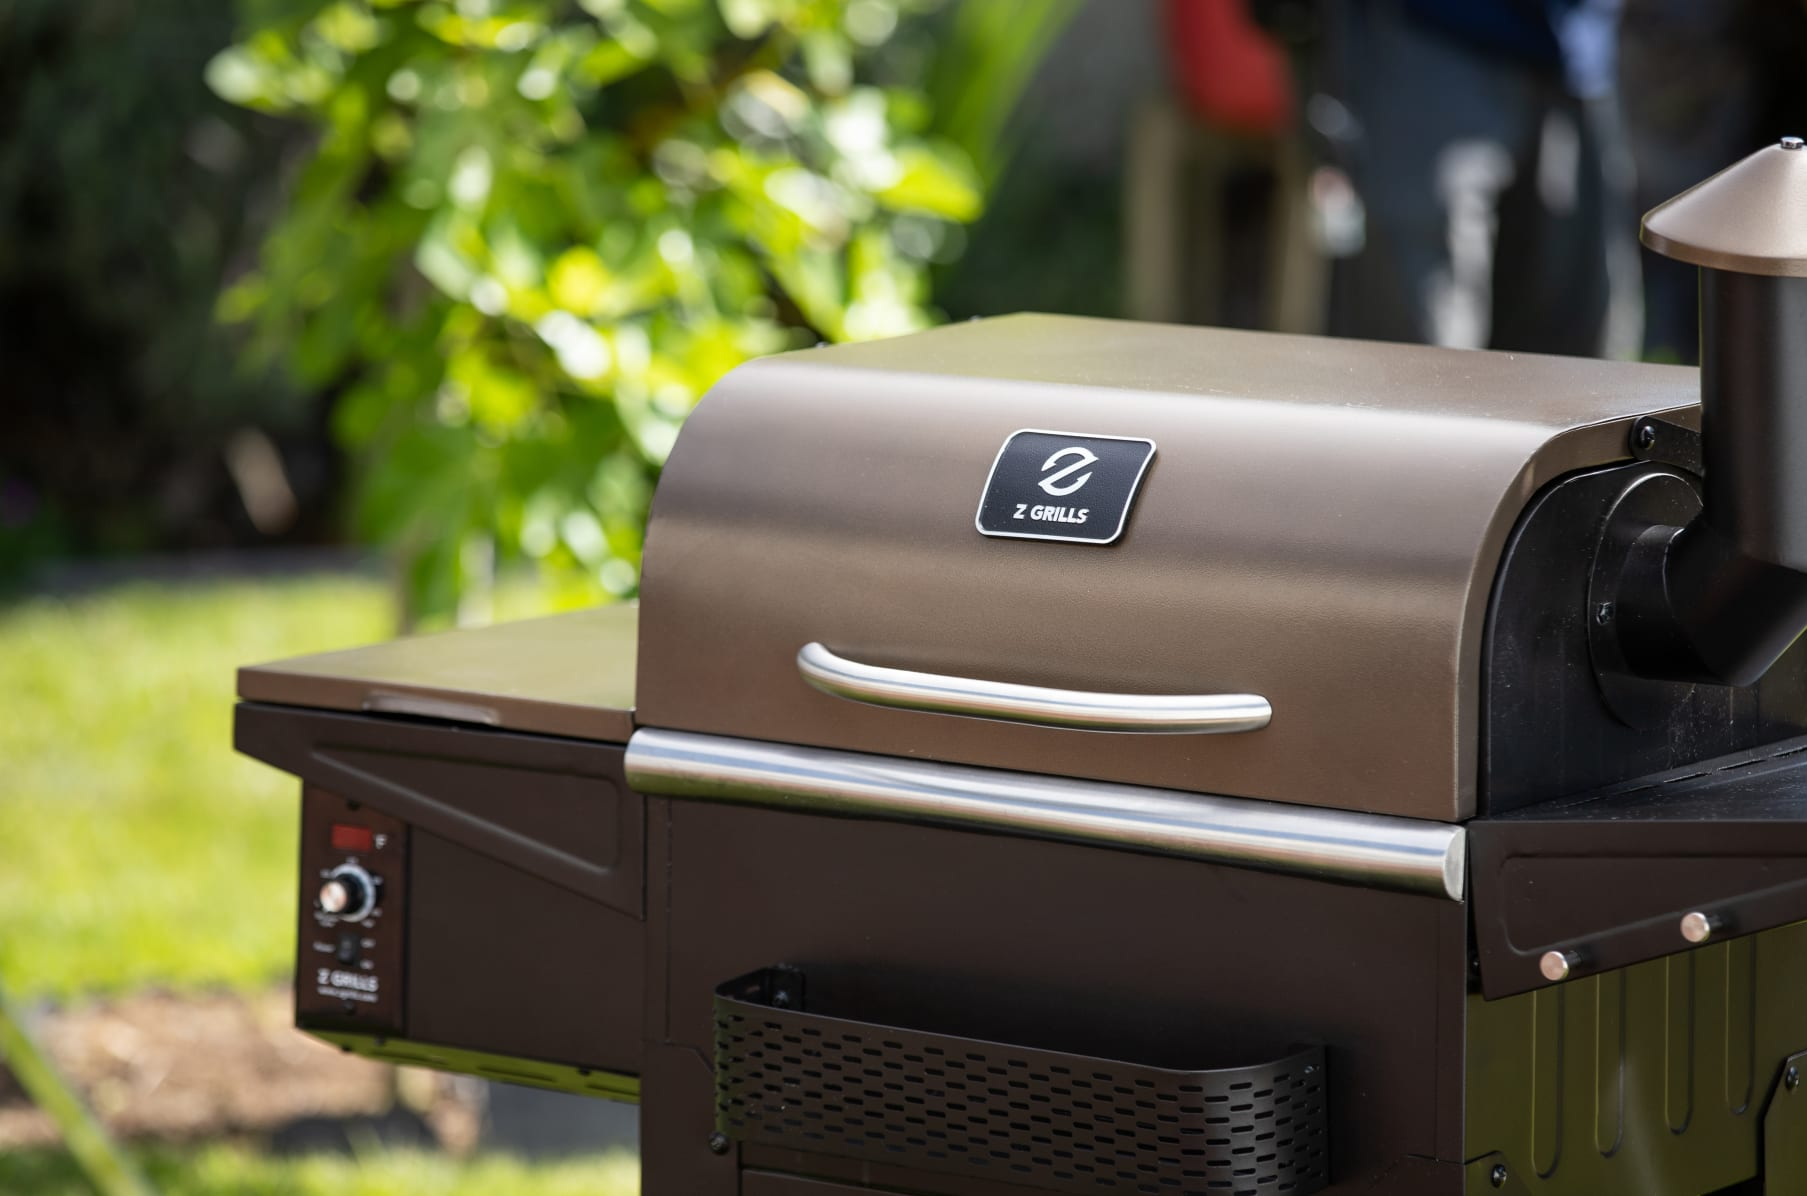 Z Grills: Affordable 7-in-1 Wood Pellet Grill | Indiegogo